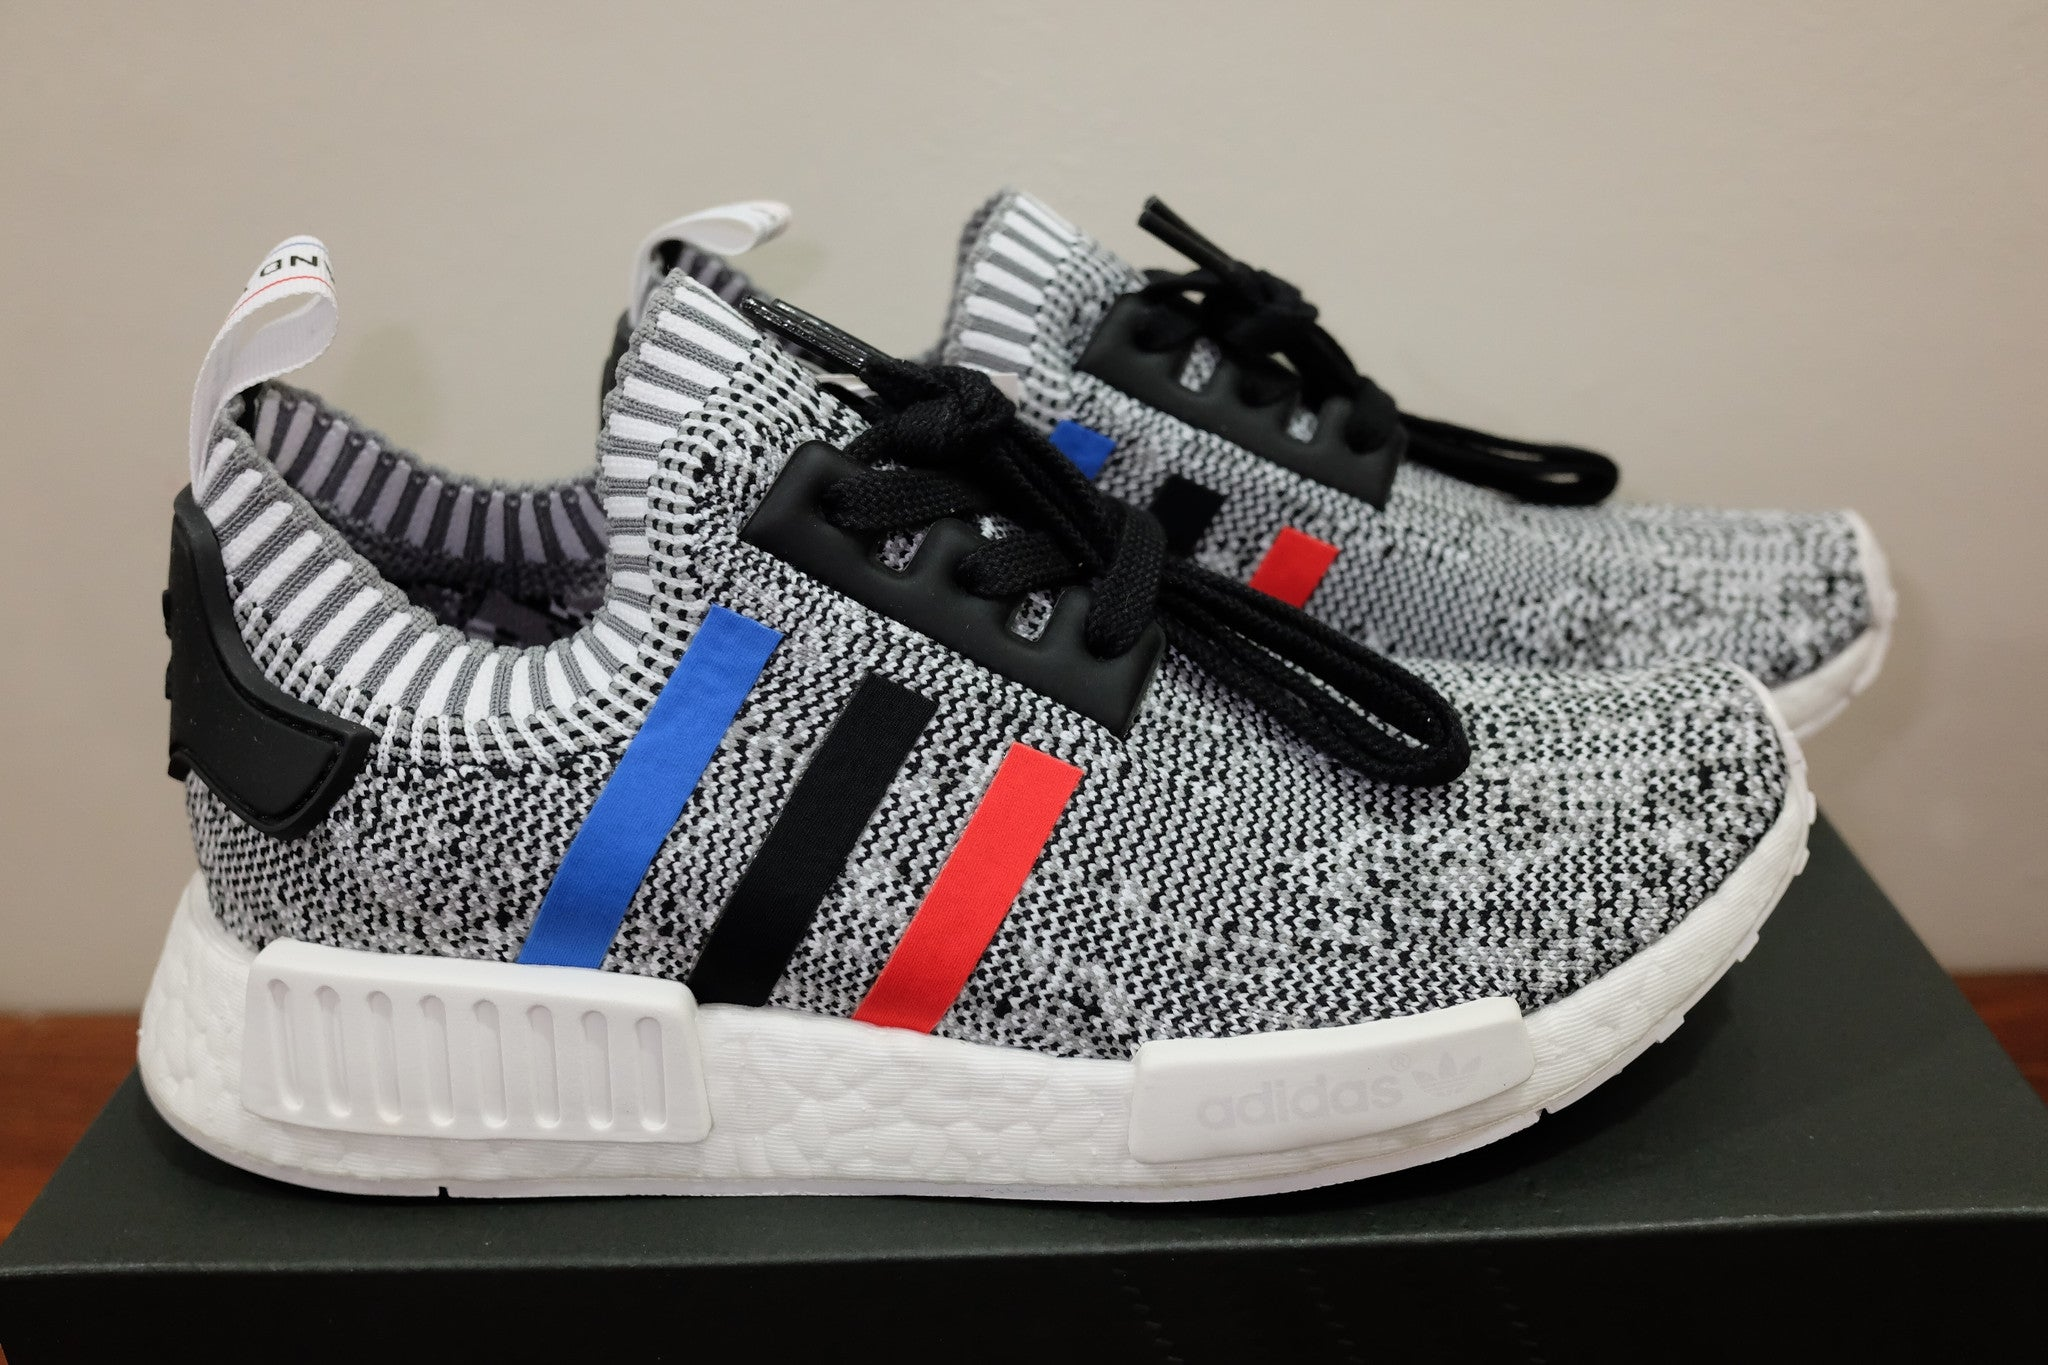 849d4ed57 ... Tri-Color White   adidas Originals NMD R1 Primeknit DarkSole.net (5) ...